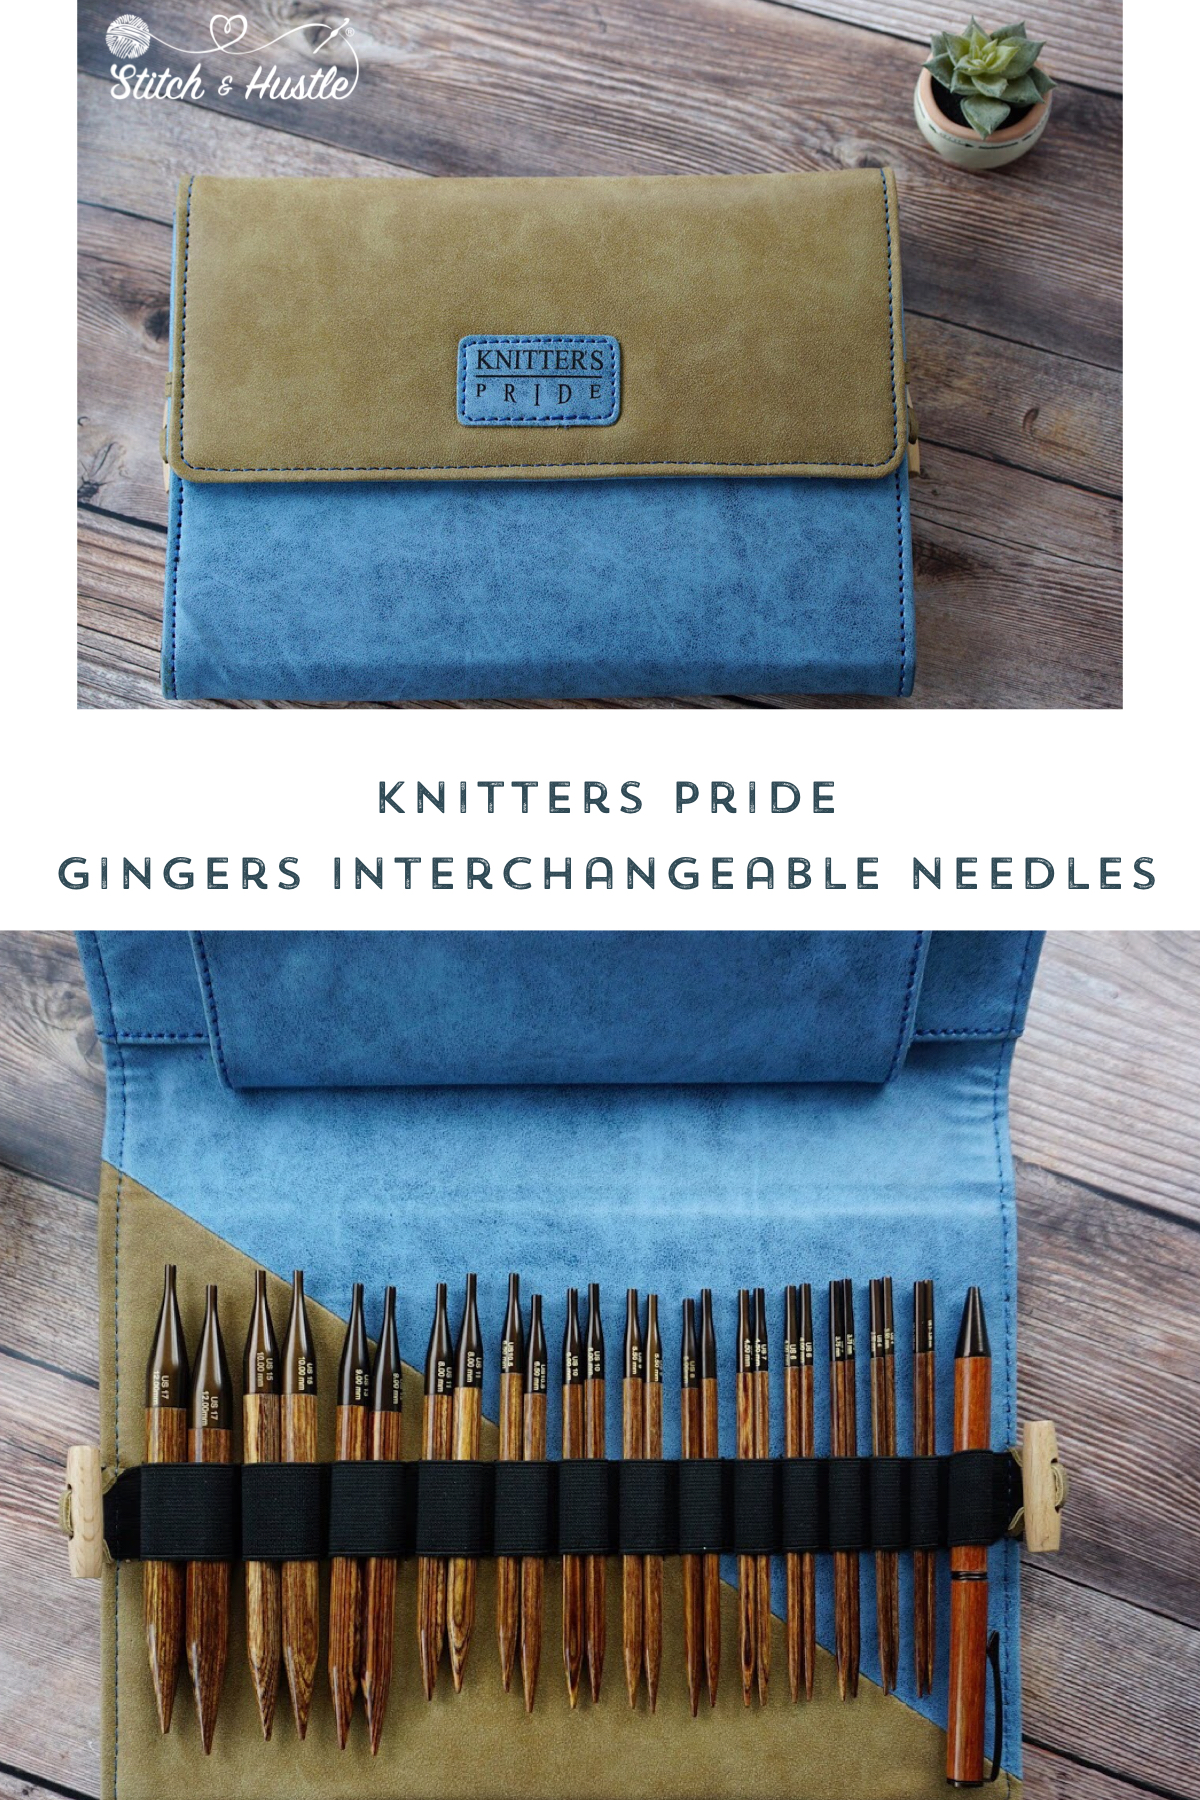 Knitters_Pride_Ginger_Interchangeable_Circular_Knitting_Needles_Review_2.jpg